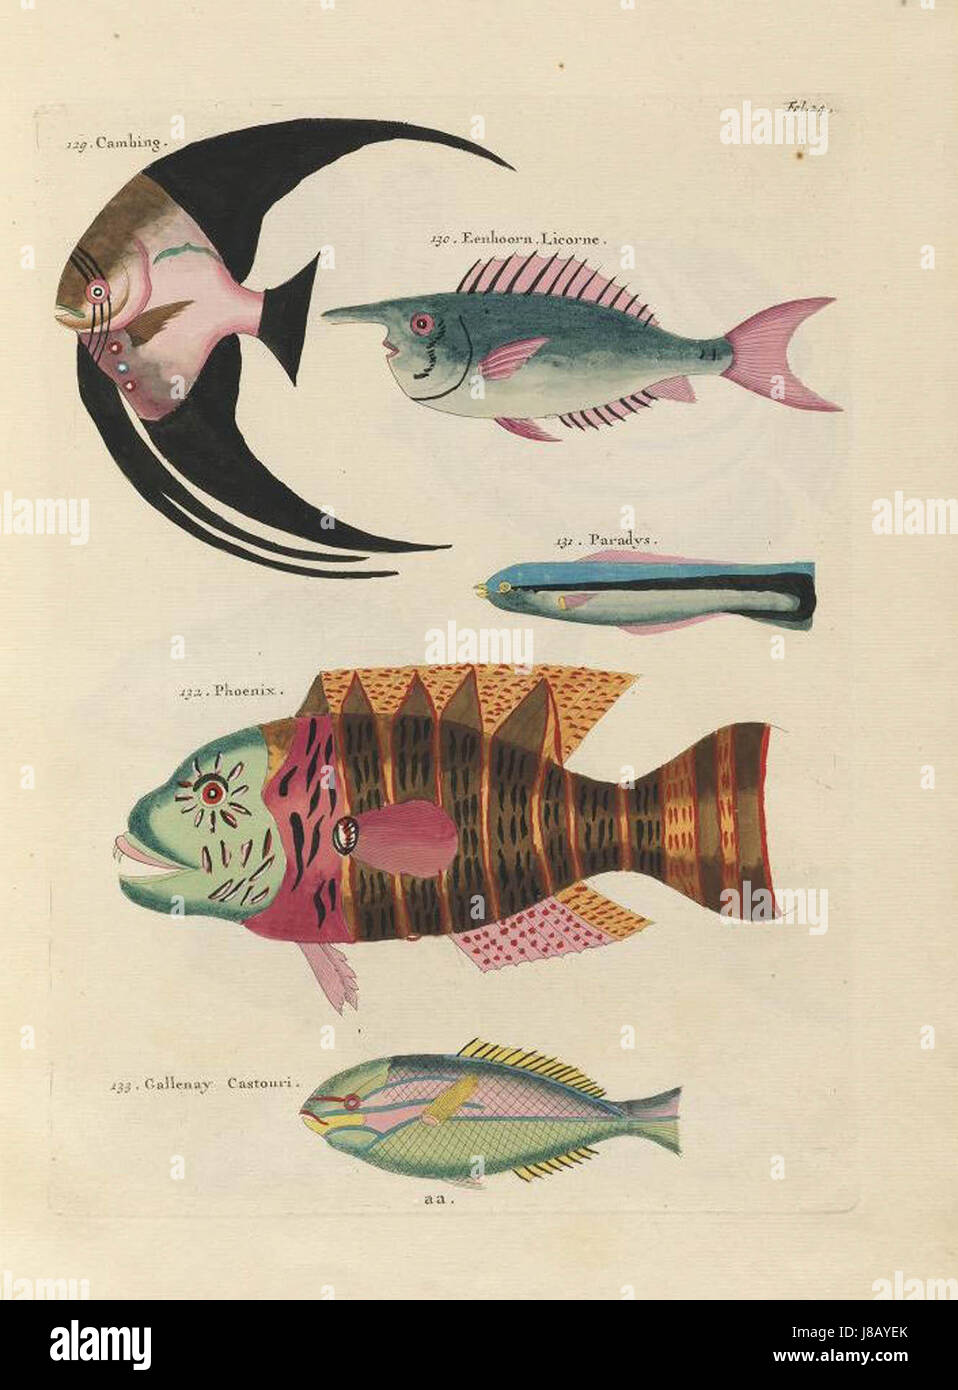 Images from the First Colour Publication on Fish (1754) - Stock Image